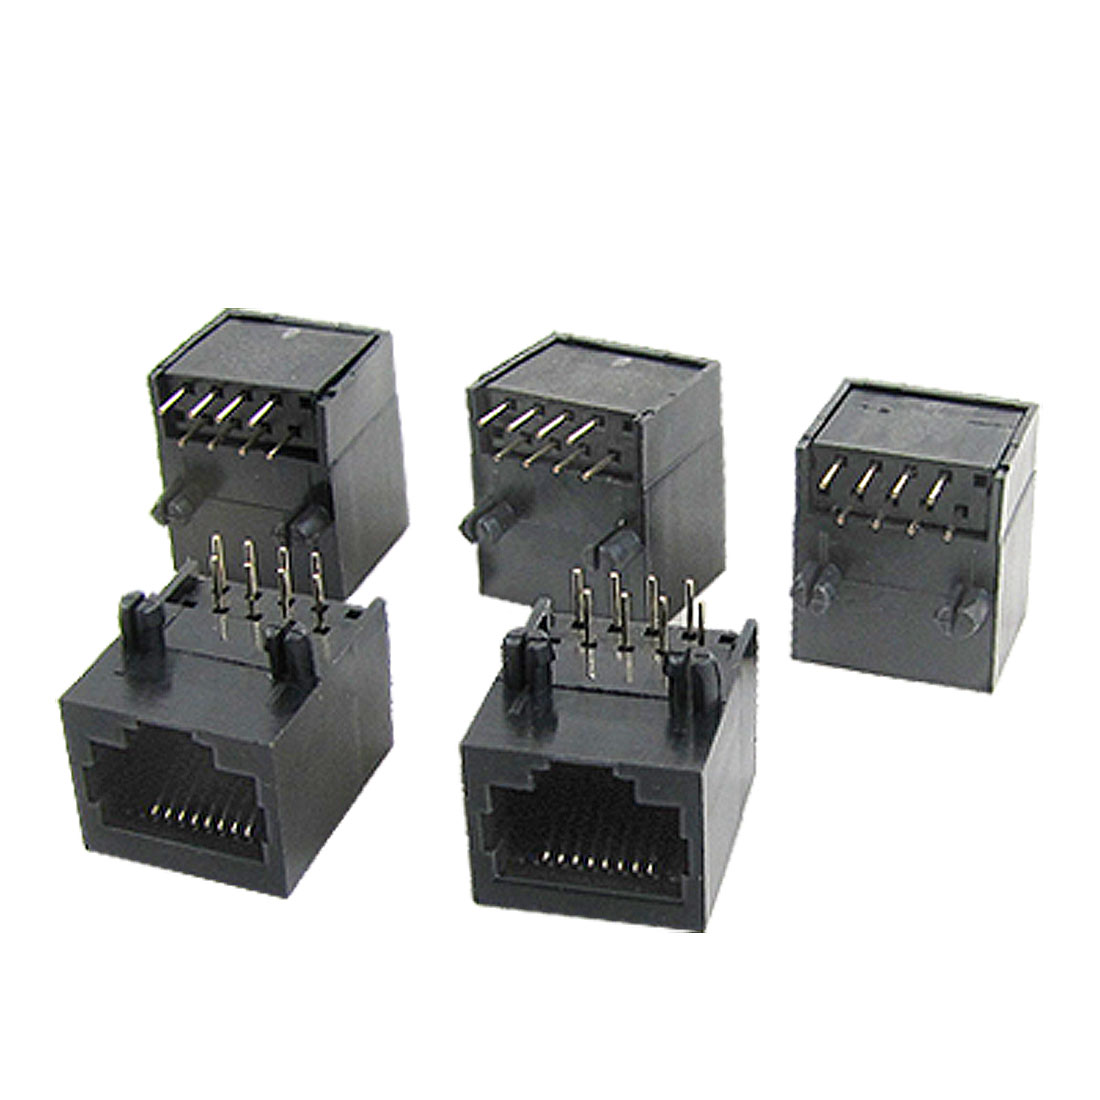 56-8P8C 8 Pin Shielded Modular Computer Network Jacks Connectors 5 Pcs